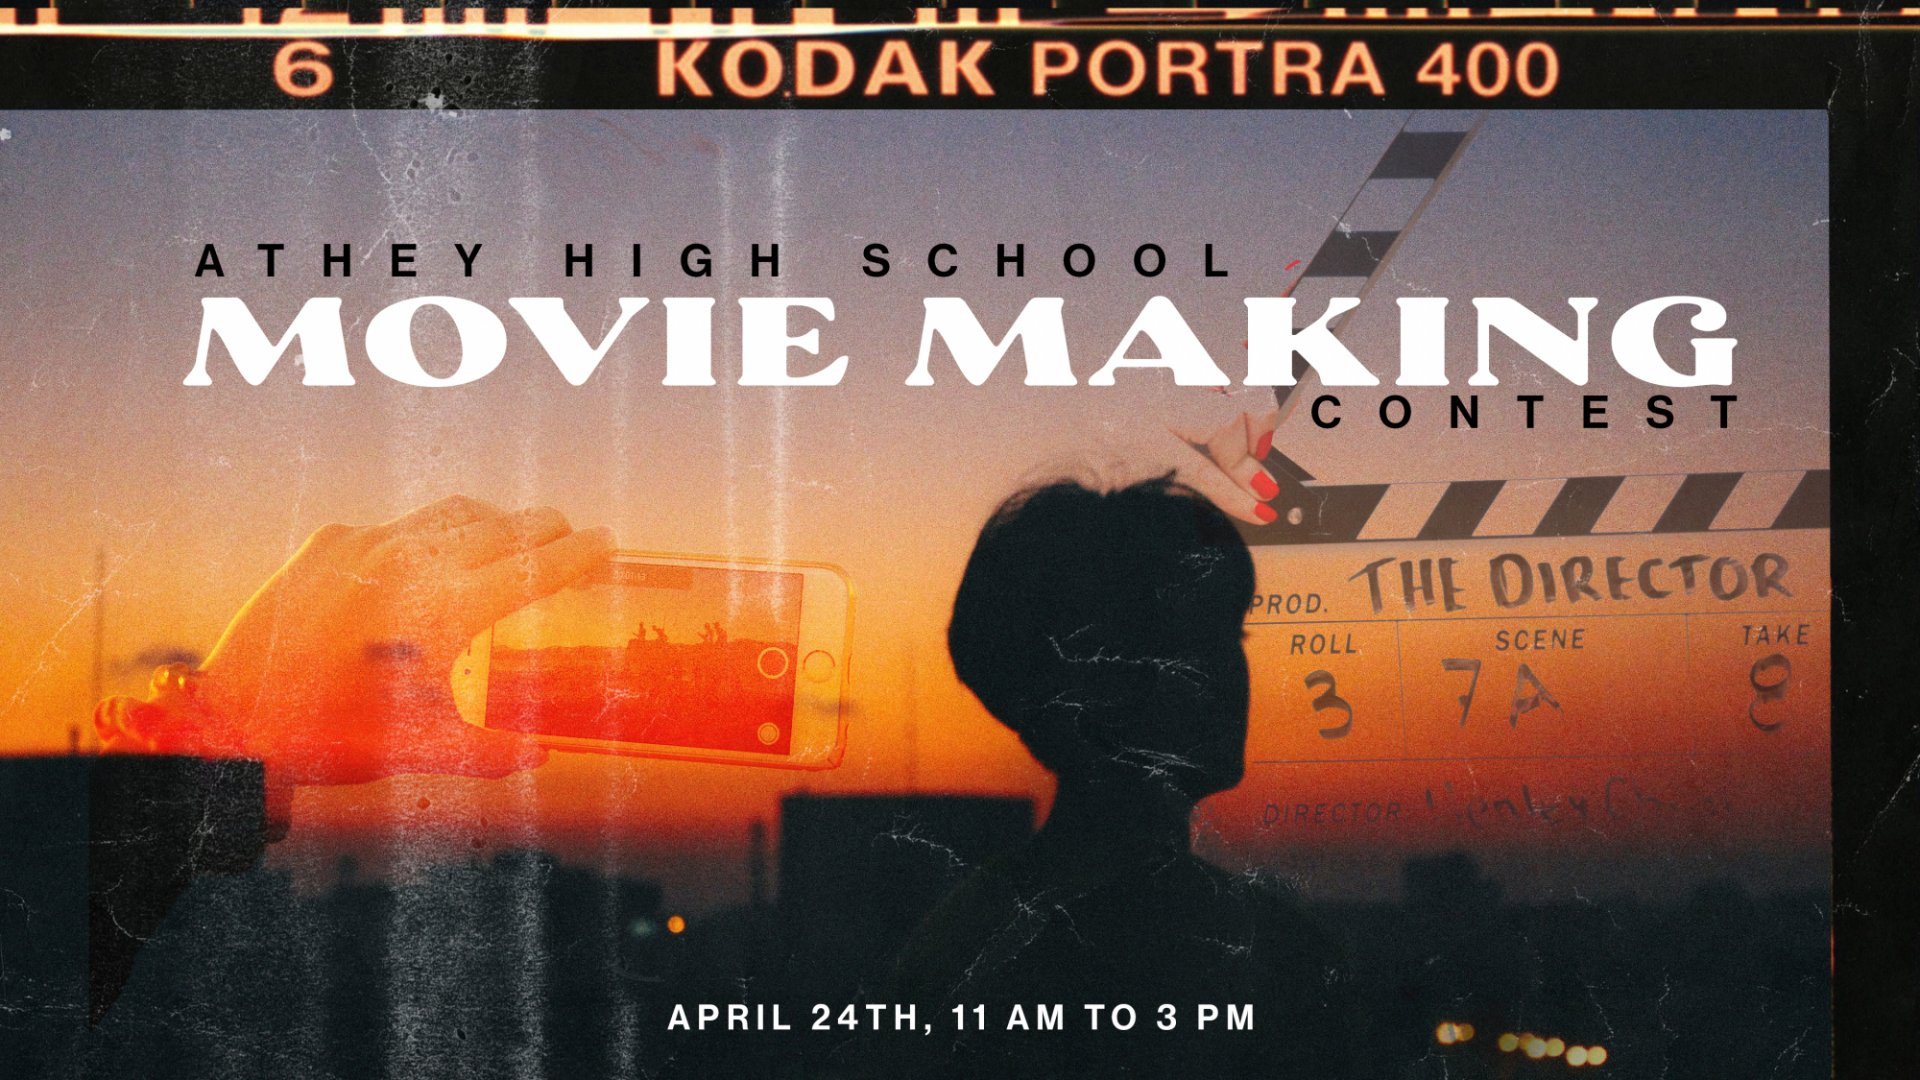 Poster for High School Movie Making Contest